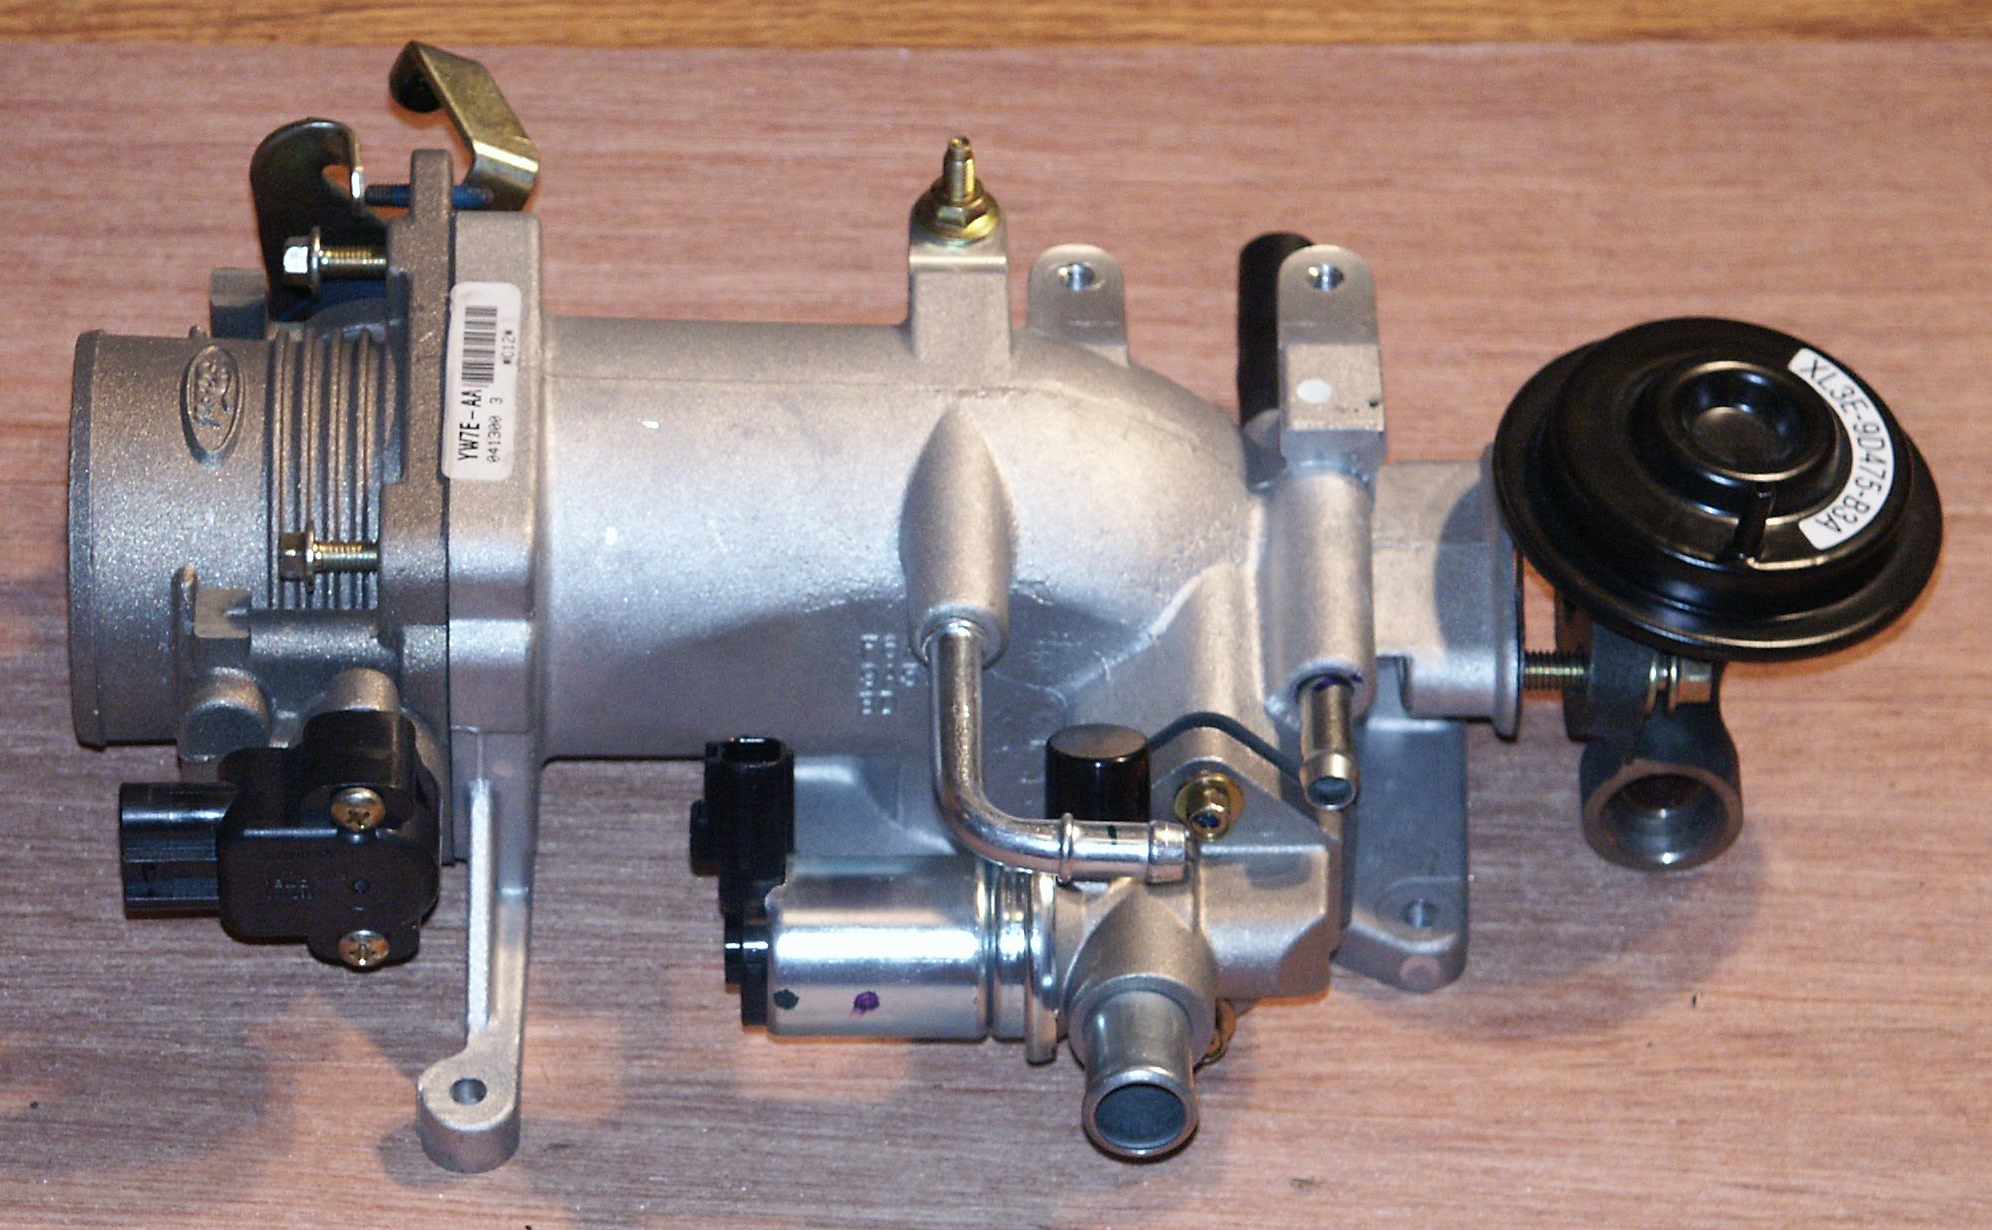 Below are some pictures of an air intake plenum assembly and some supporting components from a 2000 ford crown victoria